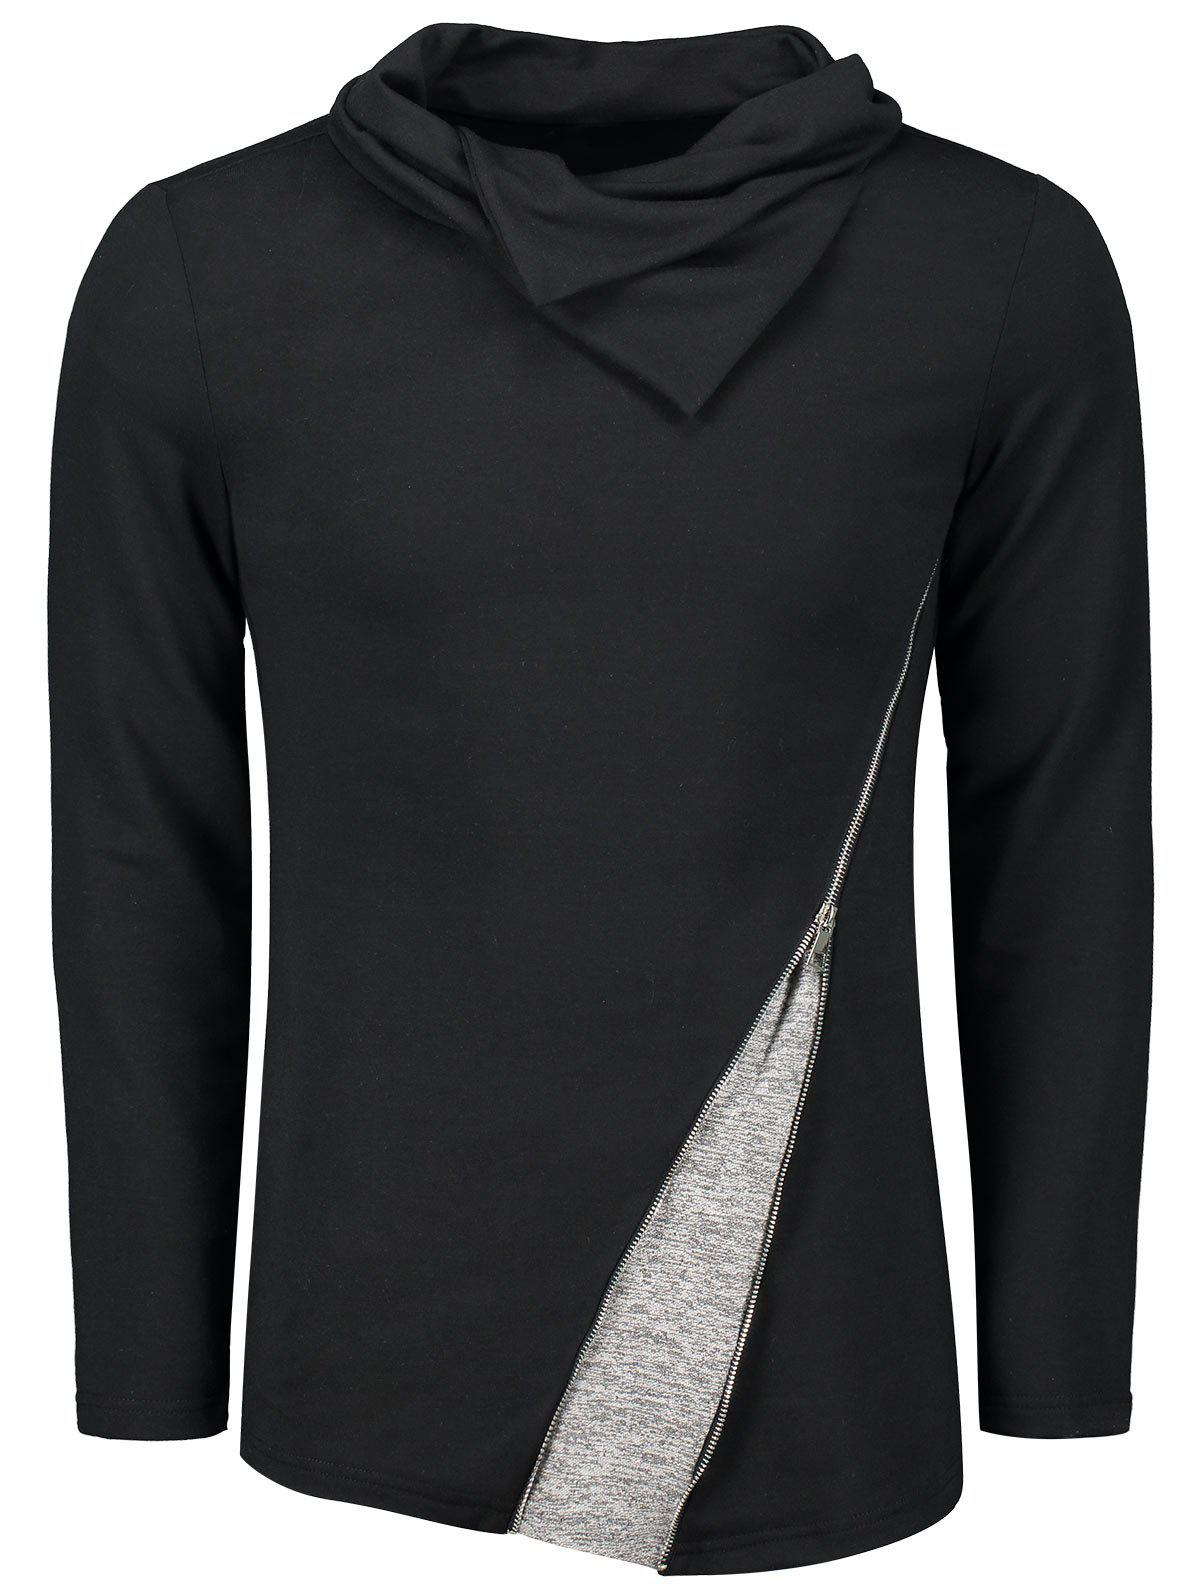 Affordable Heaps Collar Inclined Zip T-shirt